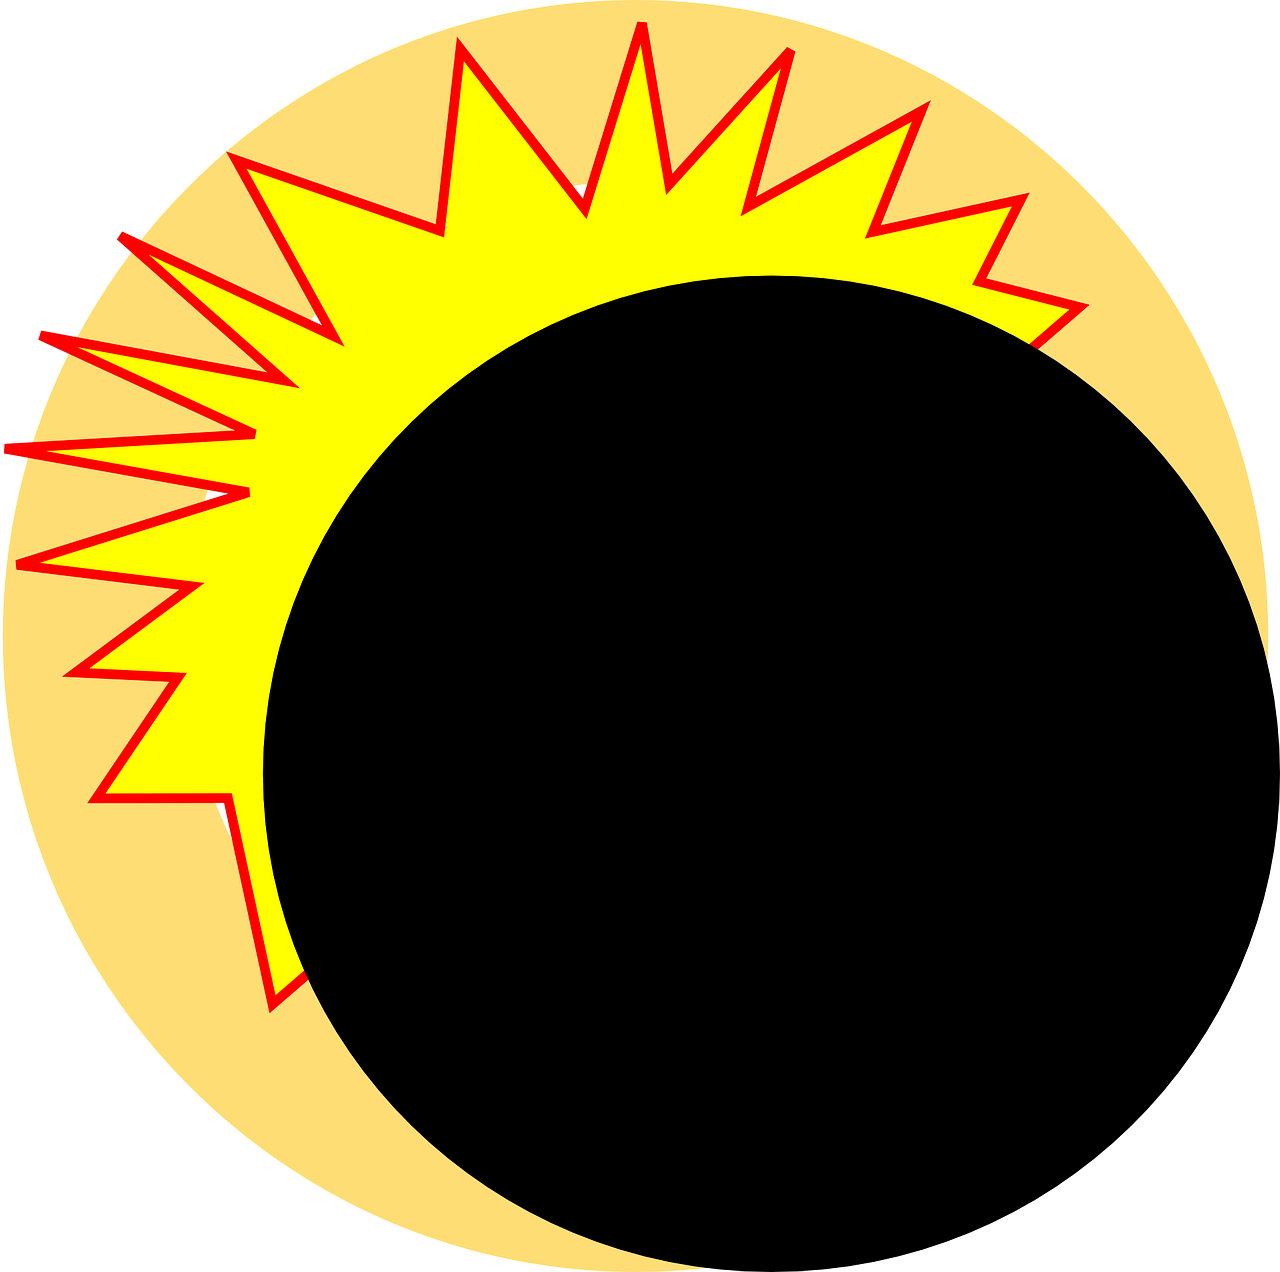 freeuse stock Eclipse clipart eclipse line. Solar of august april.